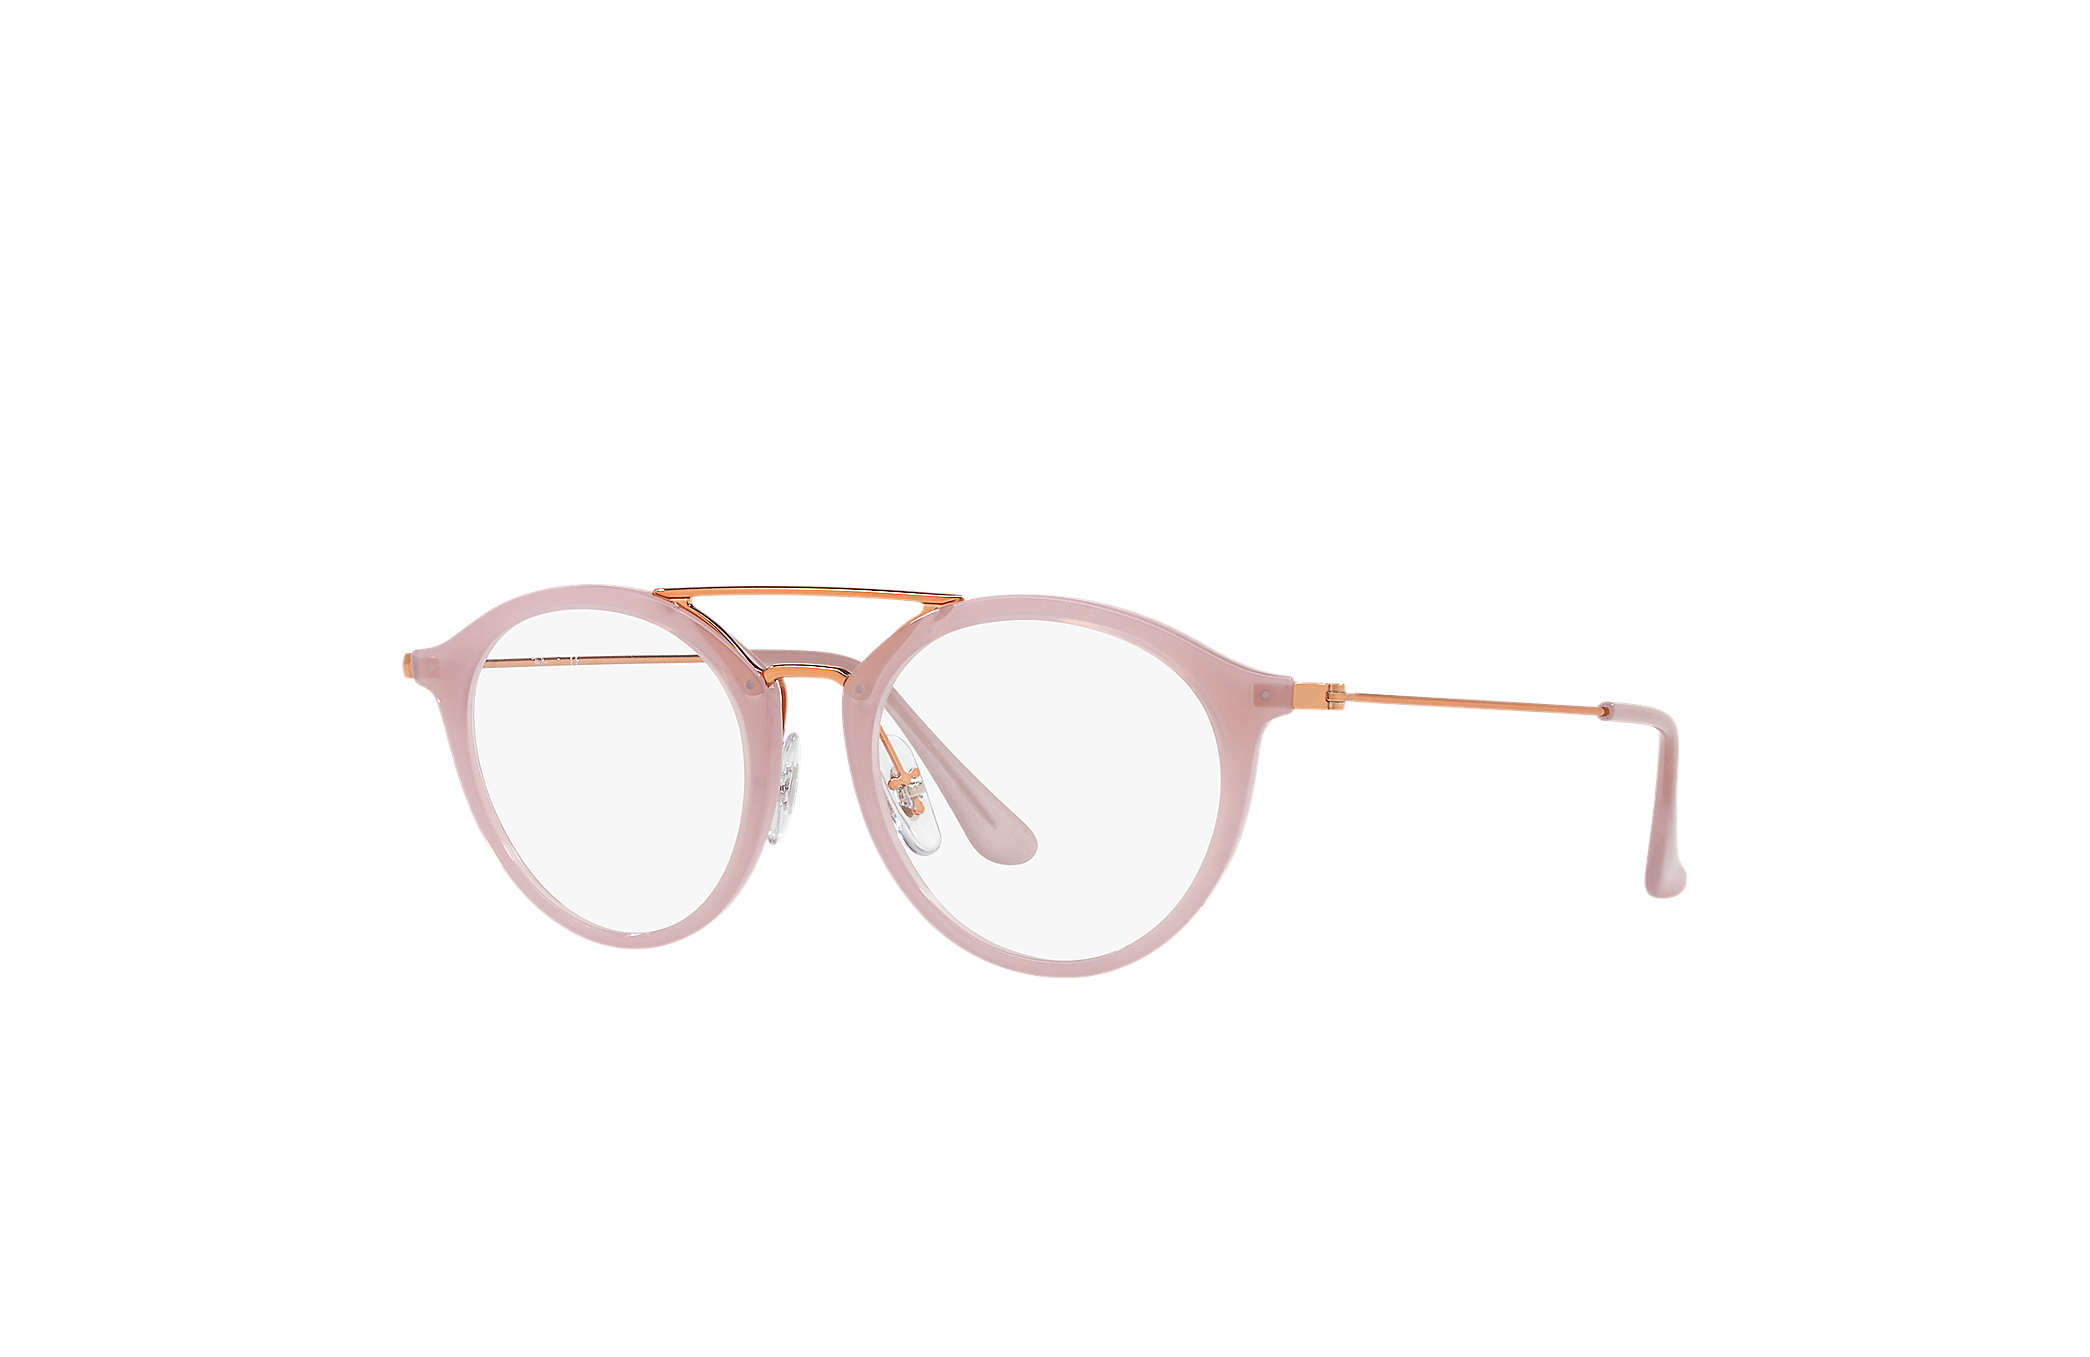 8ead92e4d168e6 Ray-Ban eyeglasses RB7097 Beige - Injected - 0RX7097572647   Ray-Ban ...